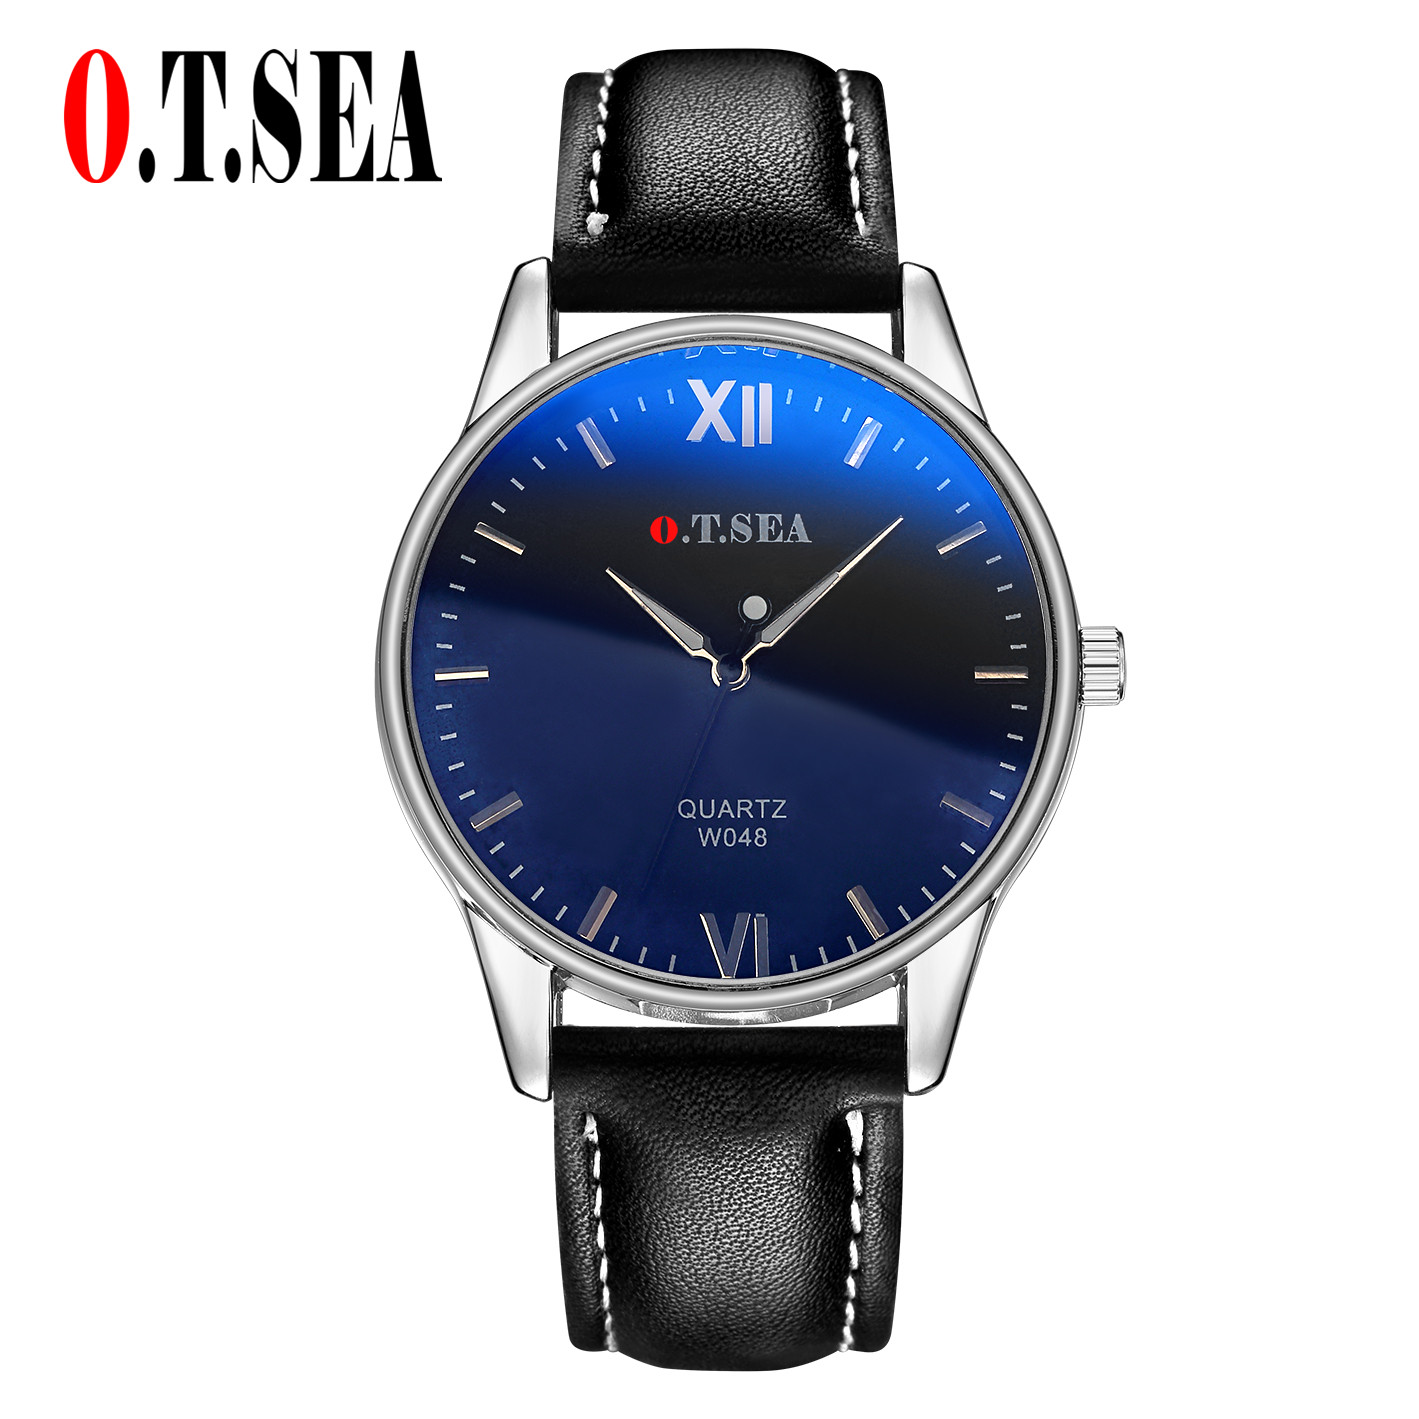 Luxury O.T.SEA Brand Blue Ray Glass Faux Leather Watches Men Military Sports Quartz Wrist Watch Relogio Masculino W048